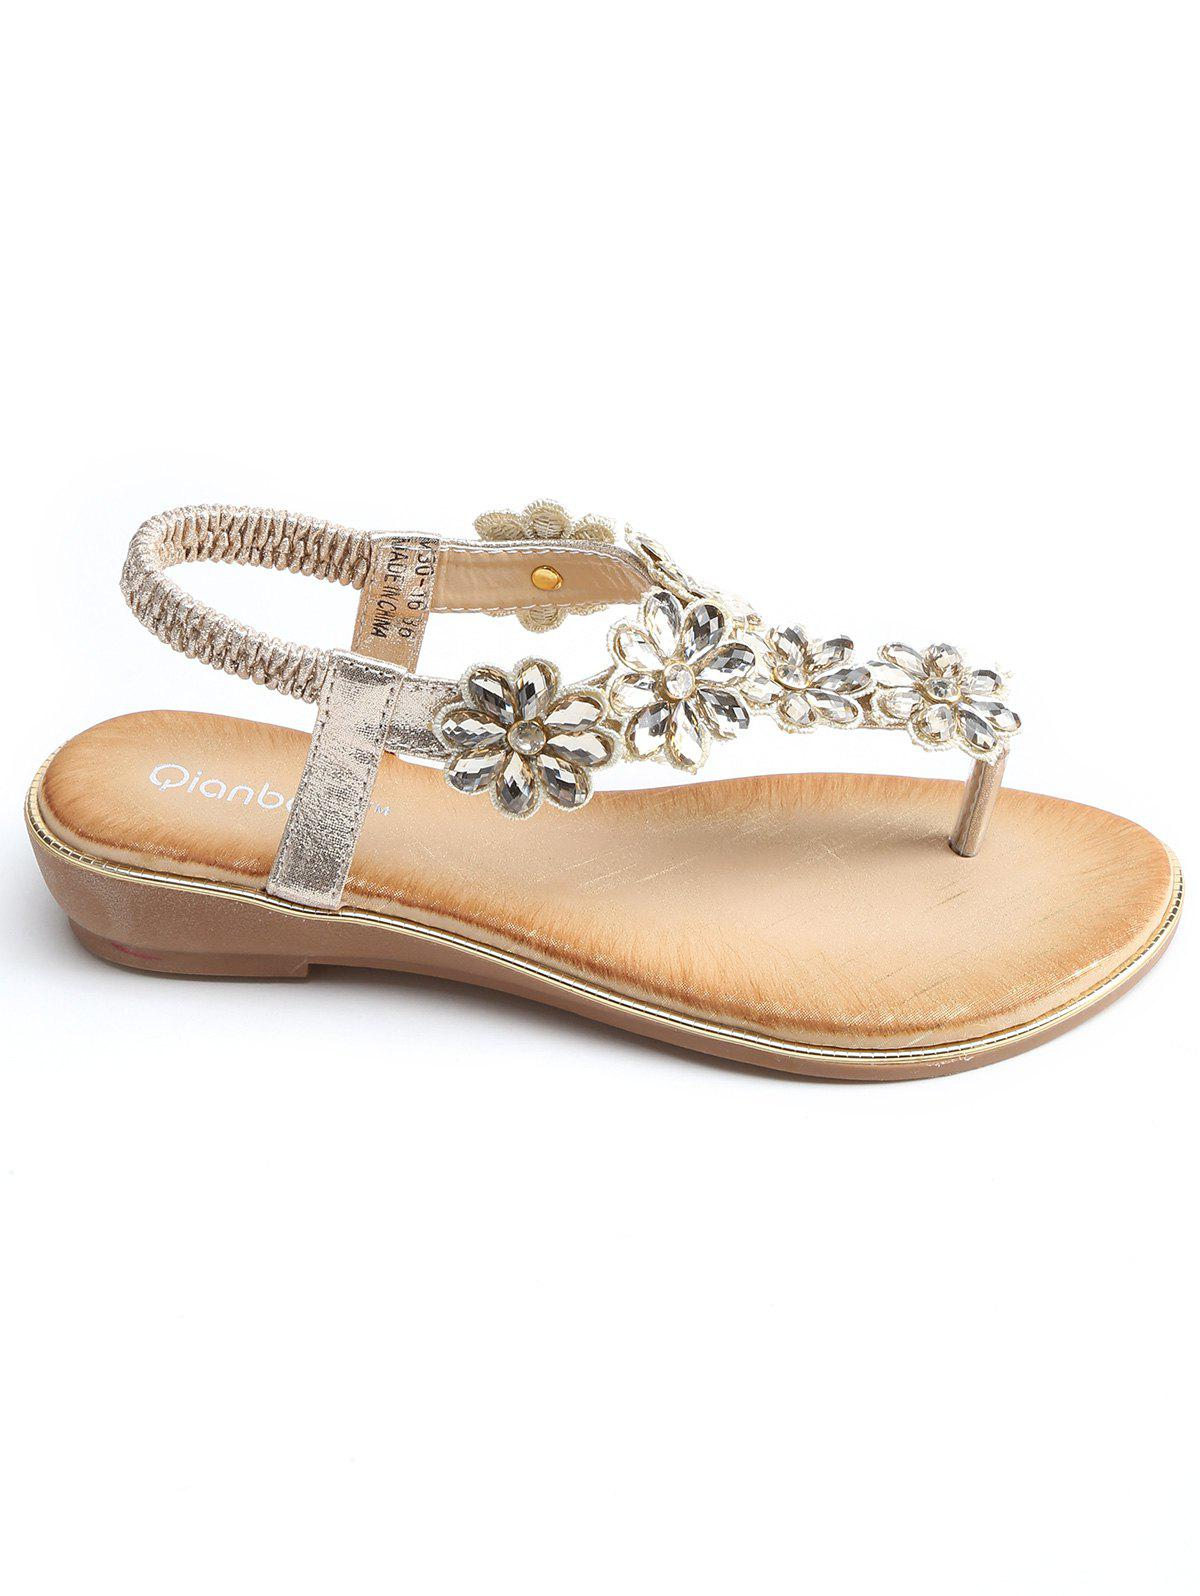 Sale T Strap Faux Crystal Floral PU Leather Sandals